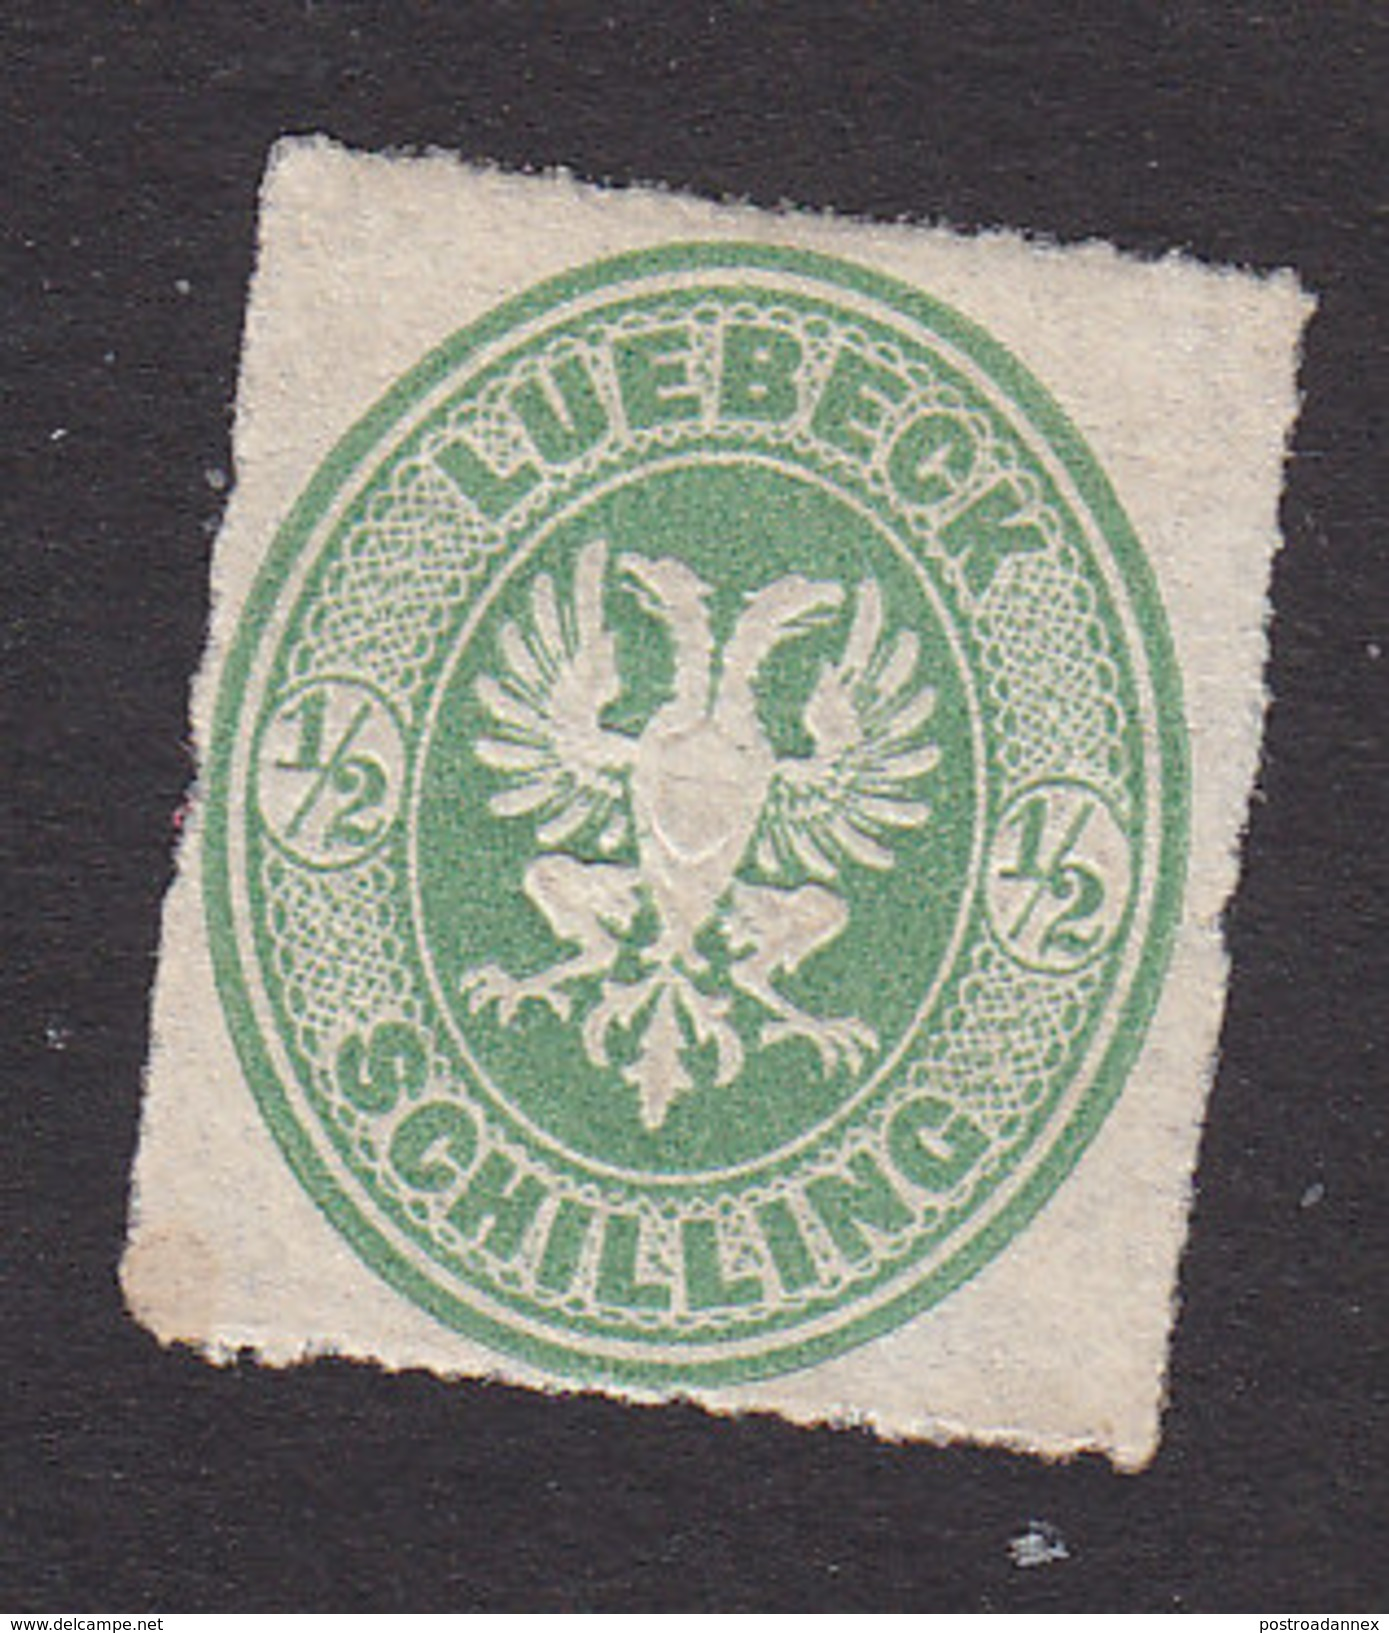 Lubeck, Scott #8, Mint Hinged, Coat Of Arms, Issued 1863 - Lubeck